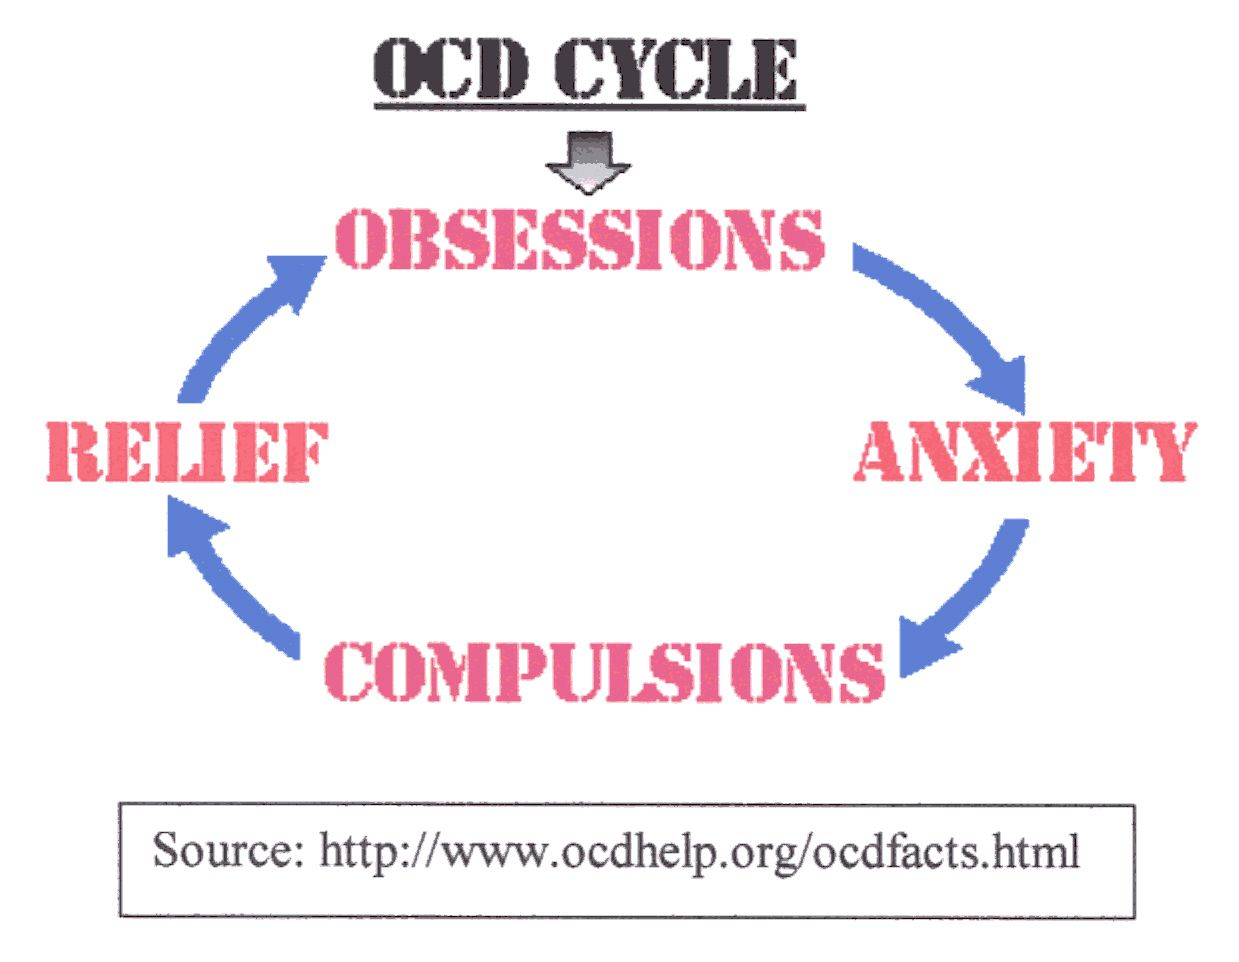 How does my essay on OCD sound? need help please! Is the paragraphs too long?